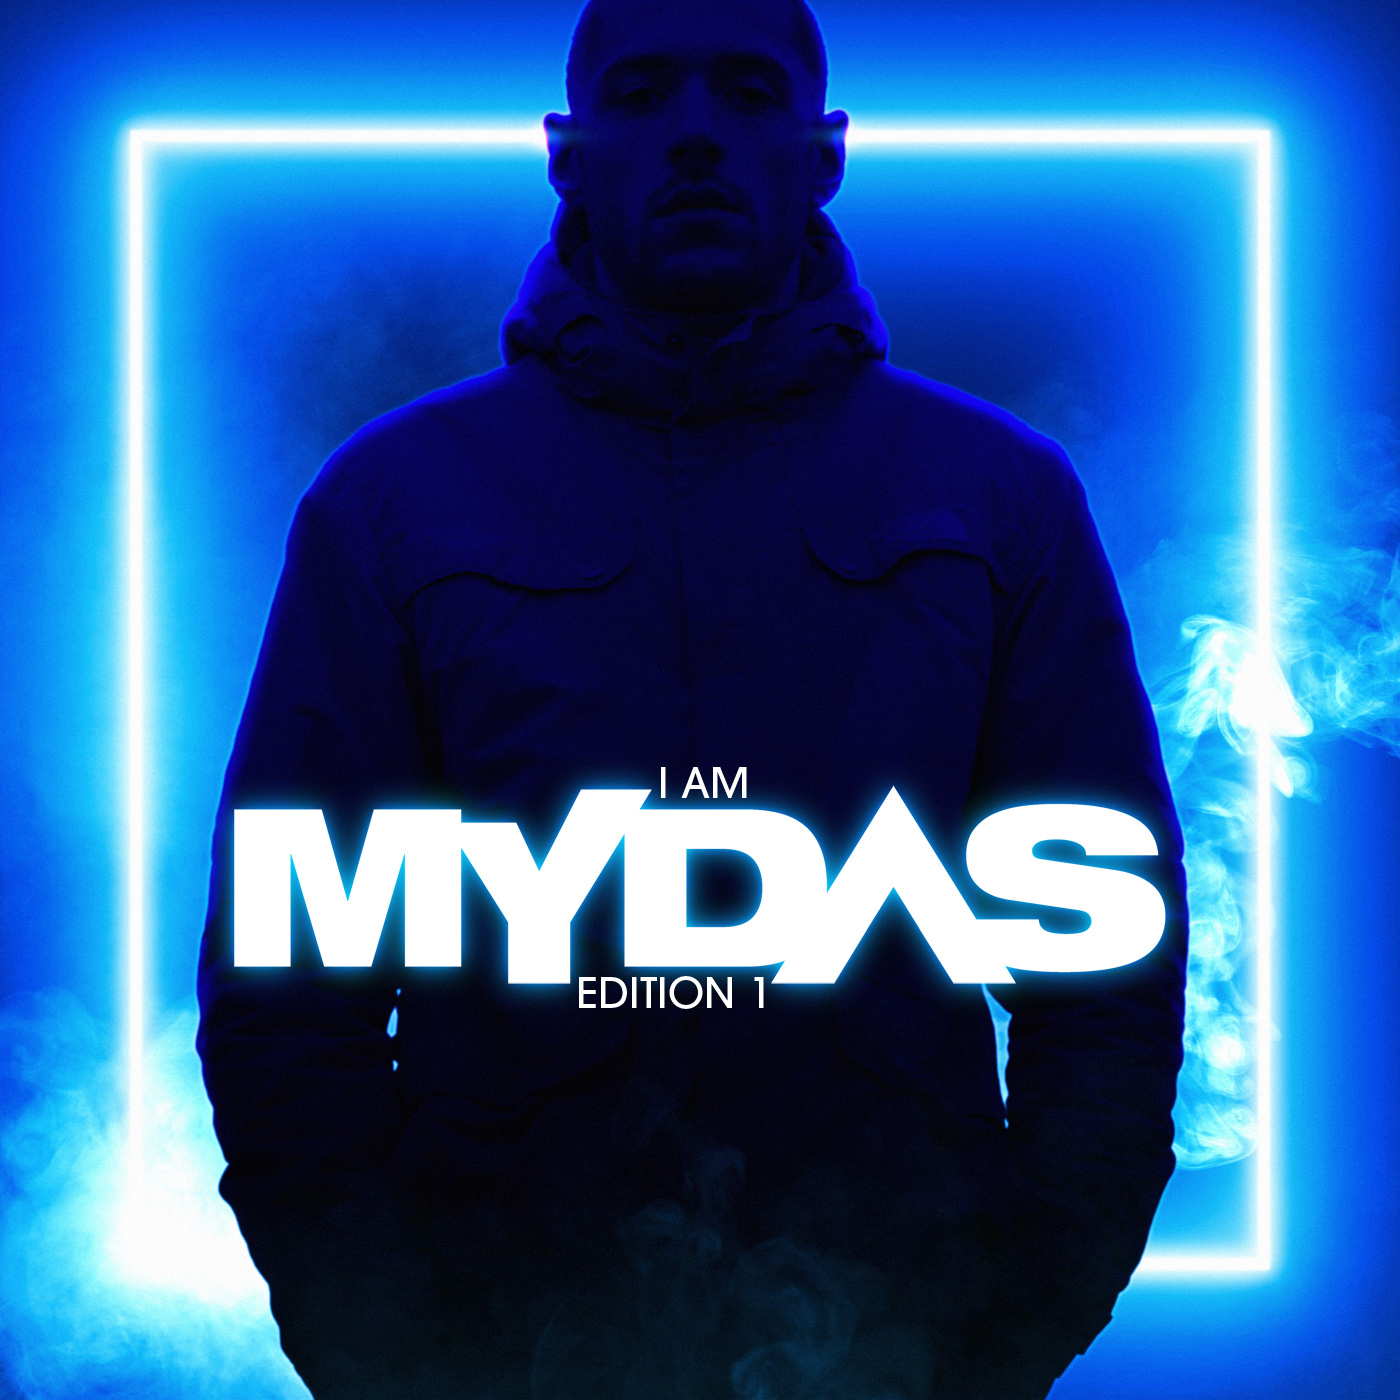 DP083: I AM MYDAS EDITION 1